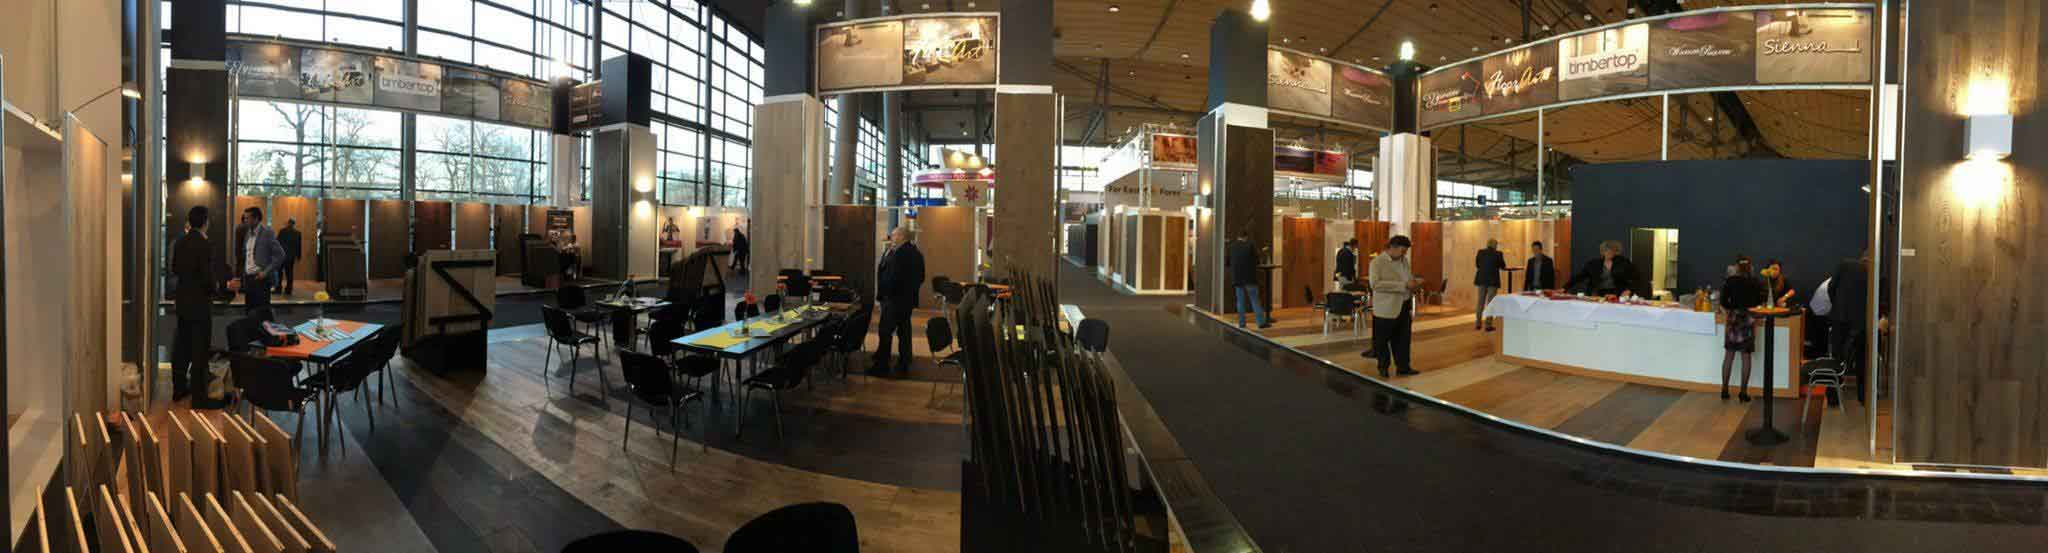 Domotex Hannover 2016 – Panoramabild vom Stand